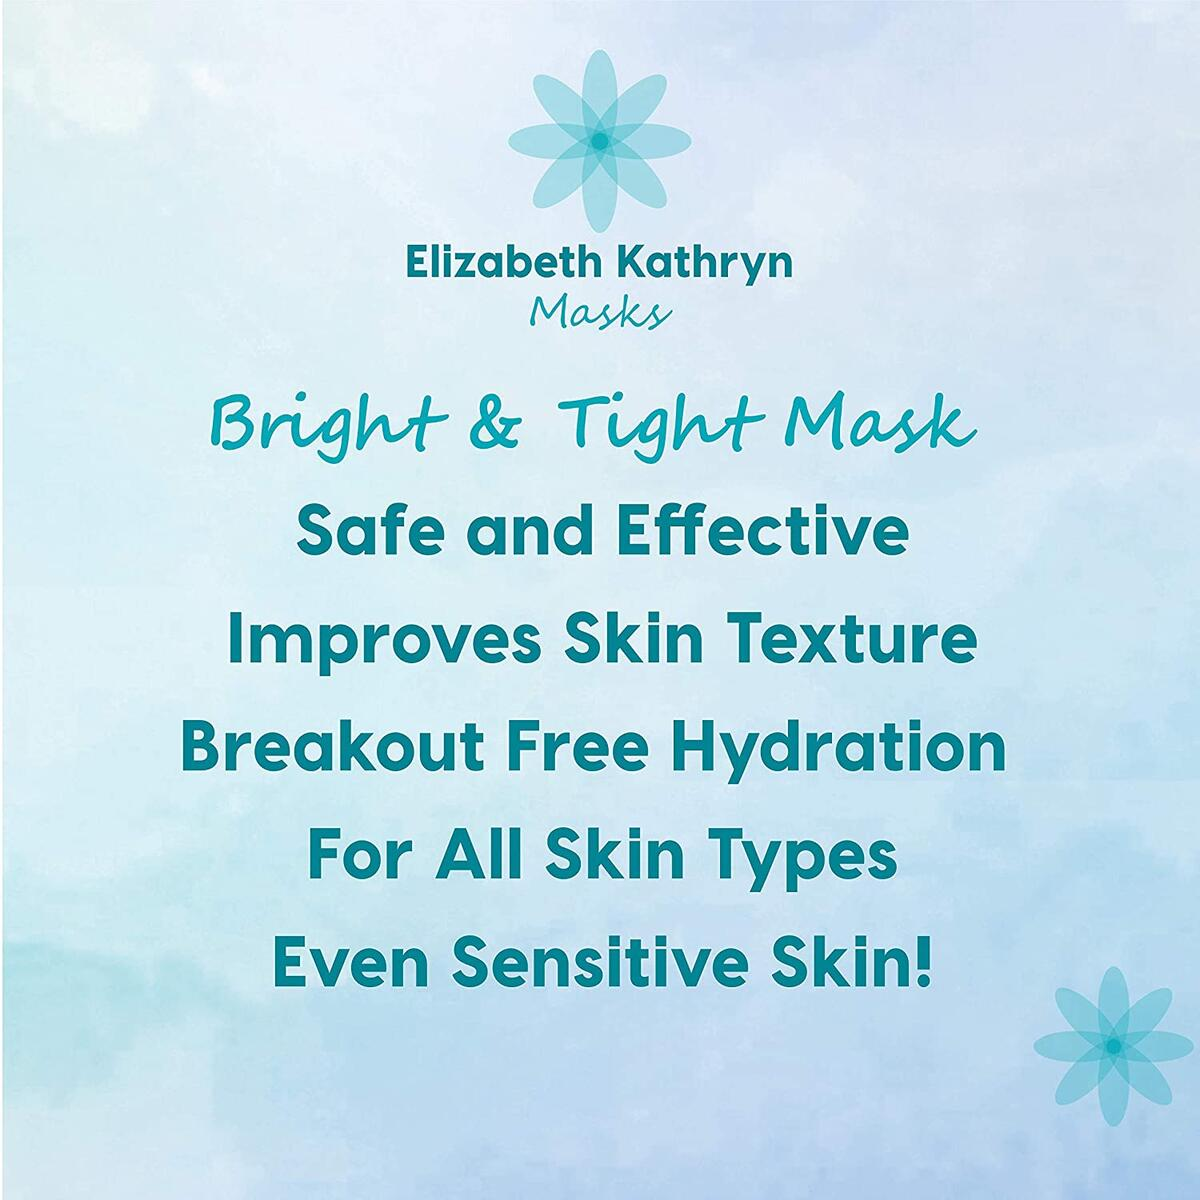 Elizabeth Kathryn Masks, Premium Natural Korean Full Face Facial Sheet Masks, Vitamin C Serum and Hydrating Hyaluronic Acid Infused, Brightening and Tightening Anti-Aging for All Skin Types, 5 Pack